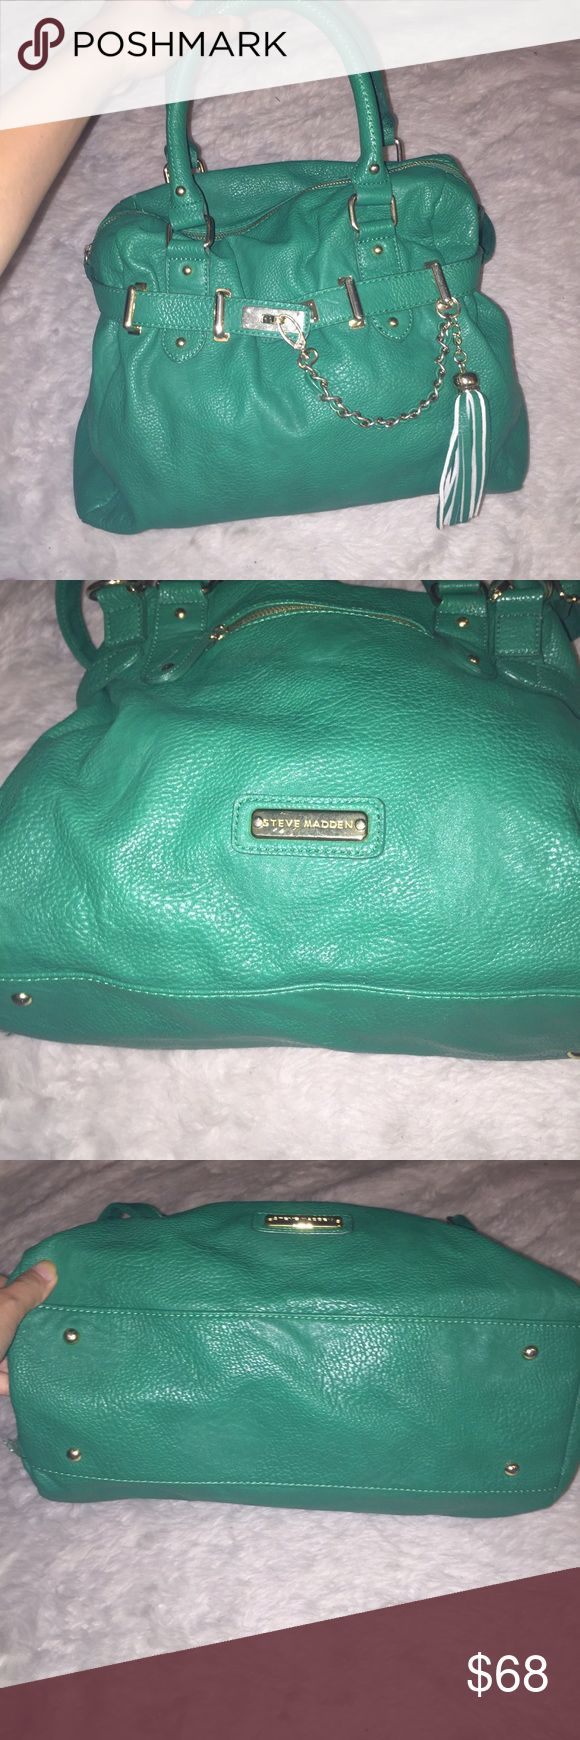 Steven madden jade green purse Giant purse can hold many things, this is a go rogue jade green with gold hard wear Steve Madden Bags